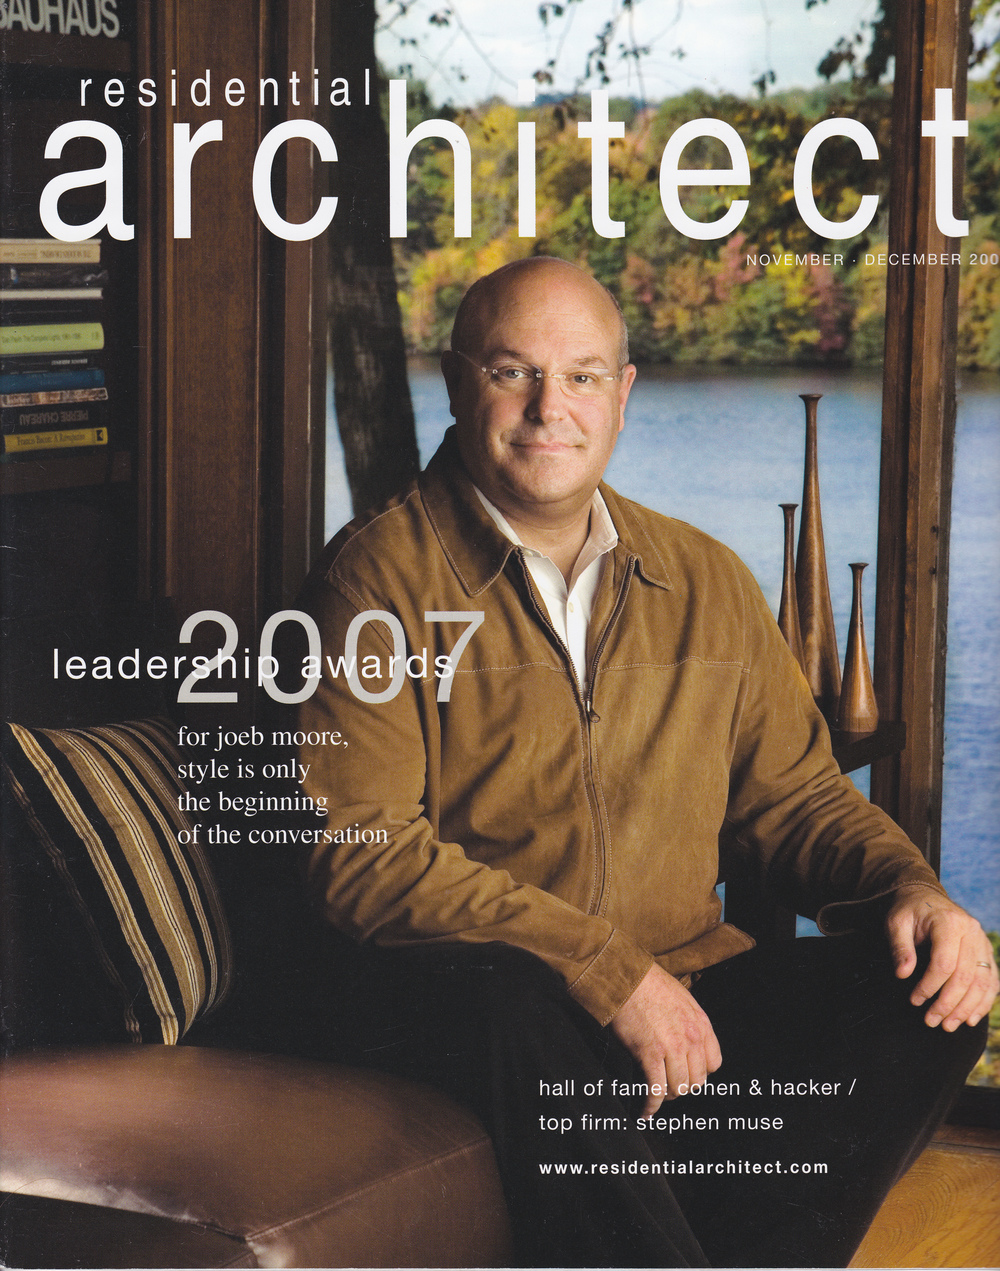 5 Res Arch Native Spkr Cover.jpg